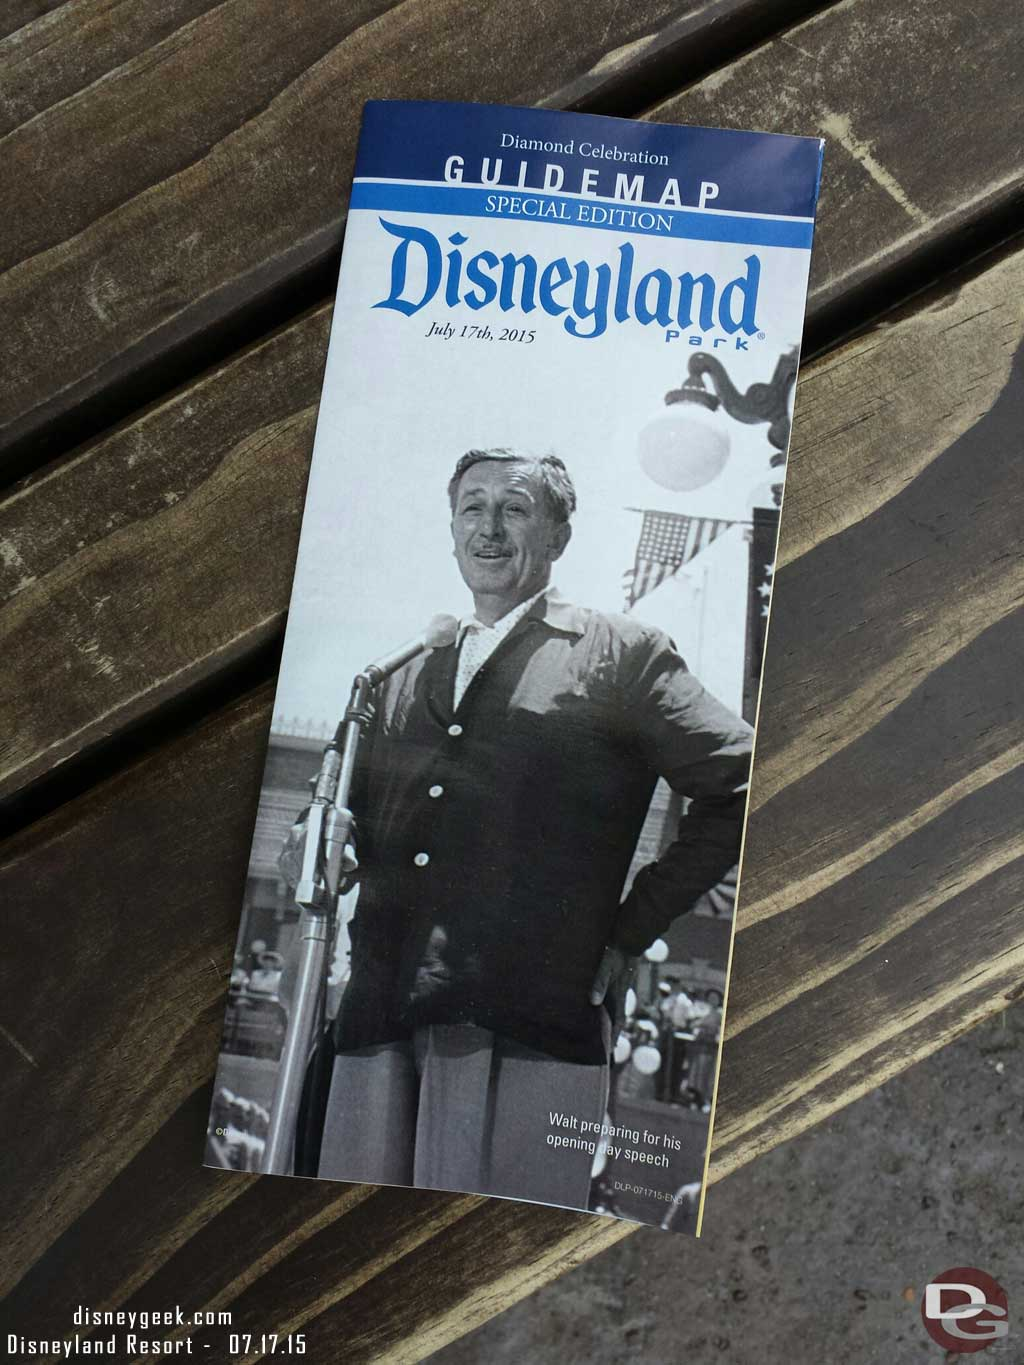 Commemorative guidemaps for #Disneyland60 feature Walt on the cover